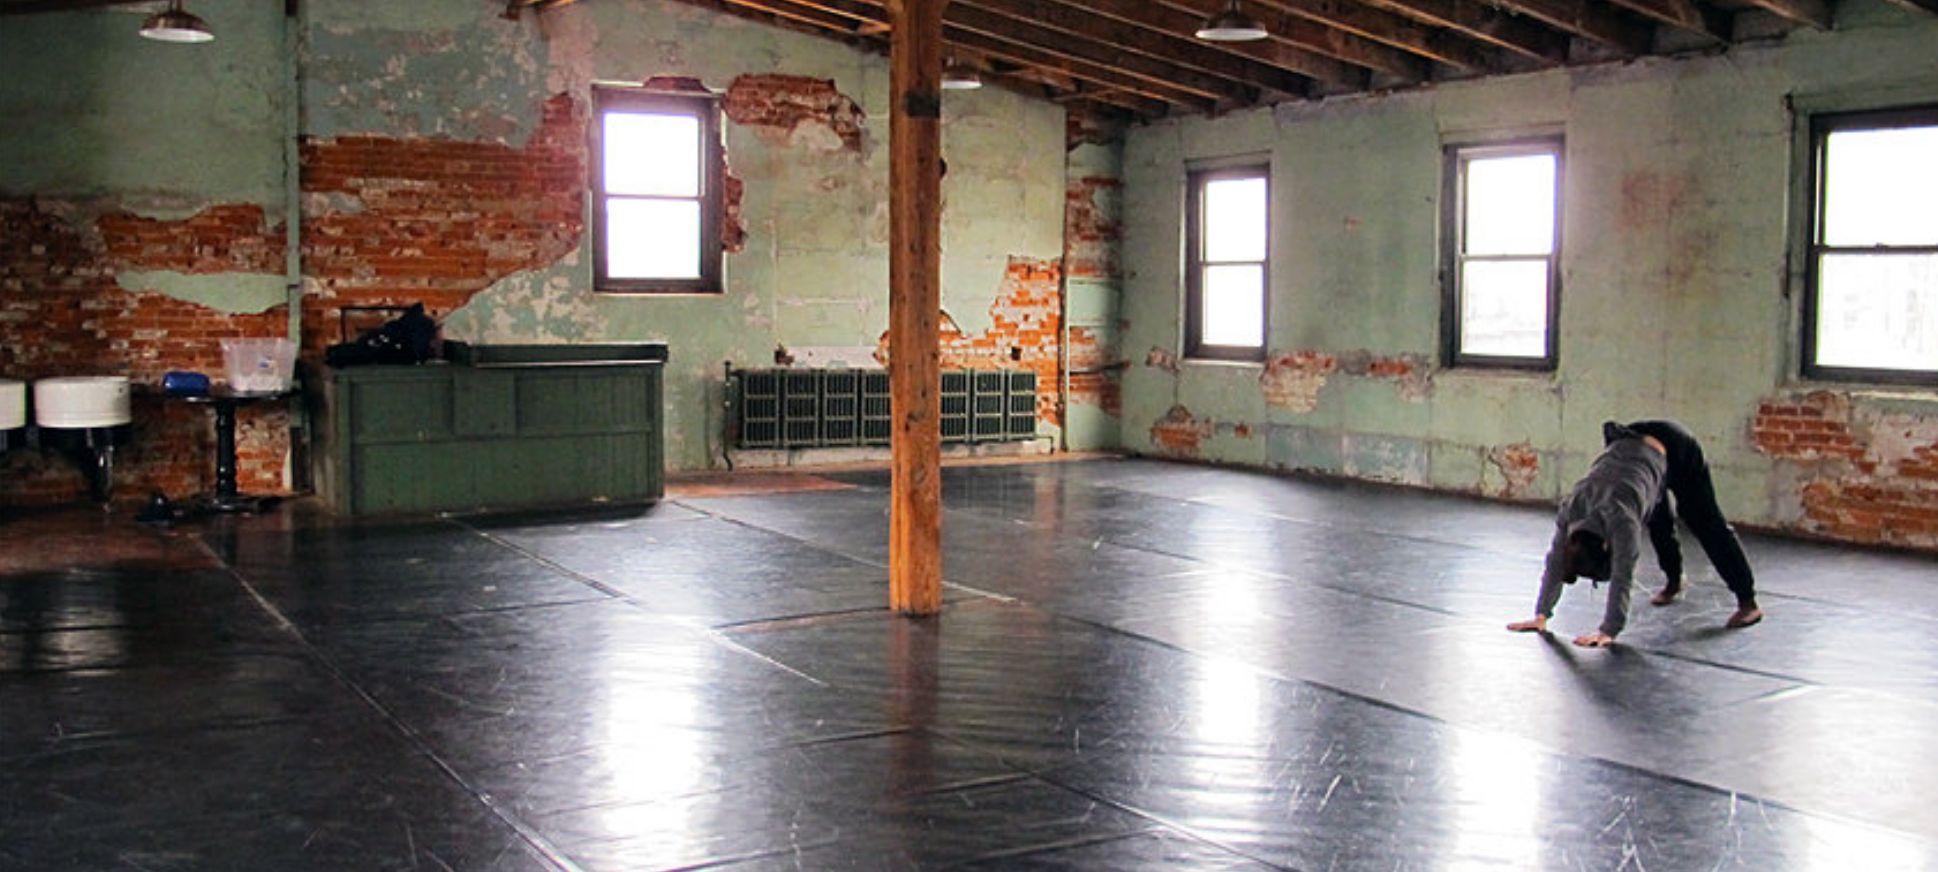 The Iron Factory Loft, in Philly PA, where we'll be shooting starting June 6th